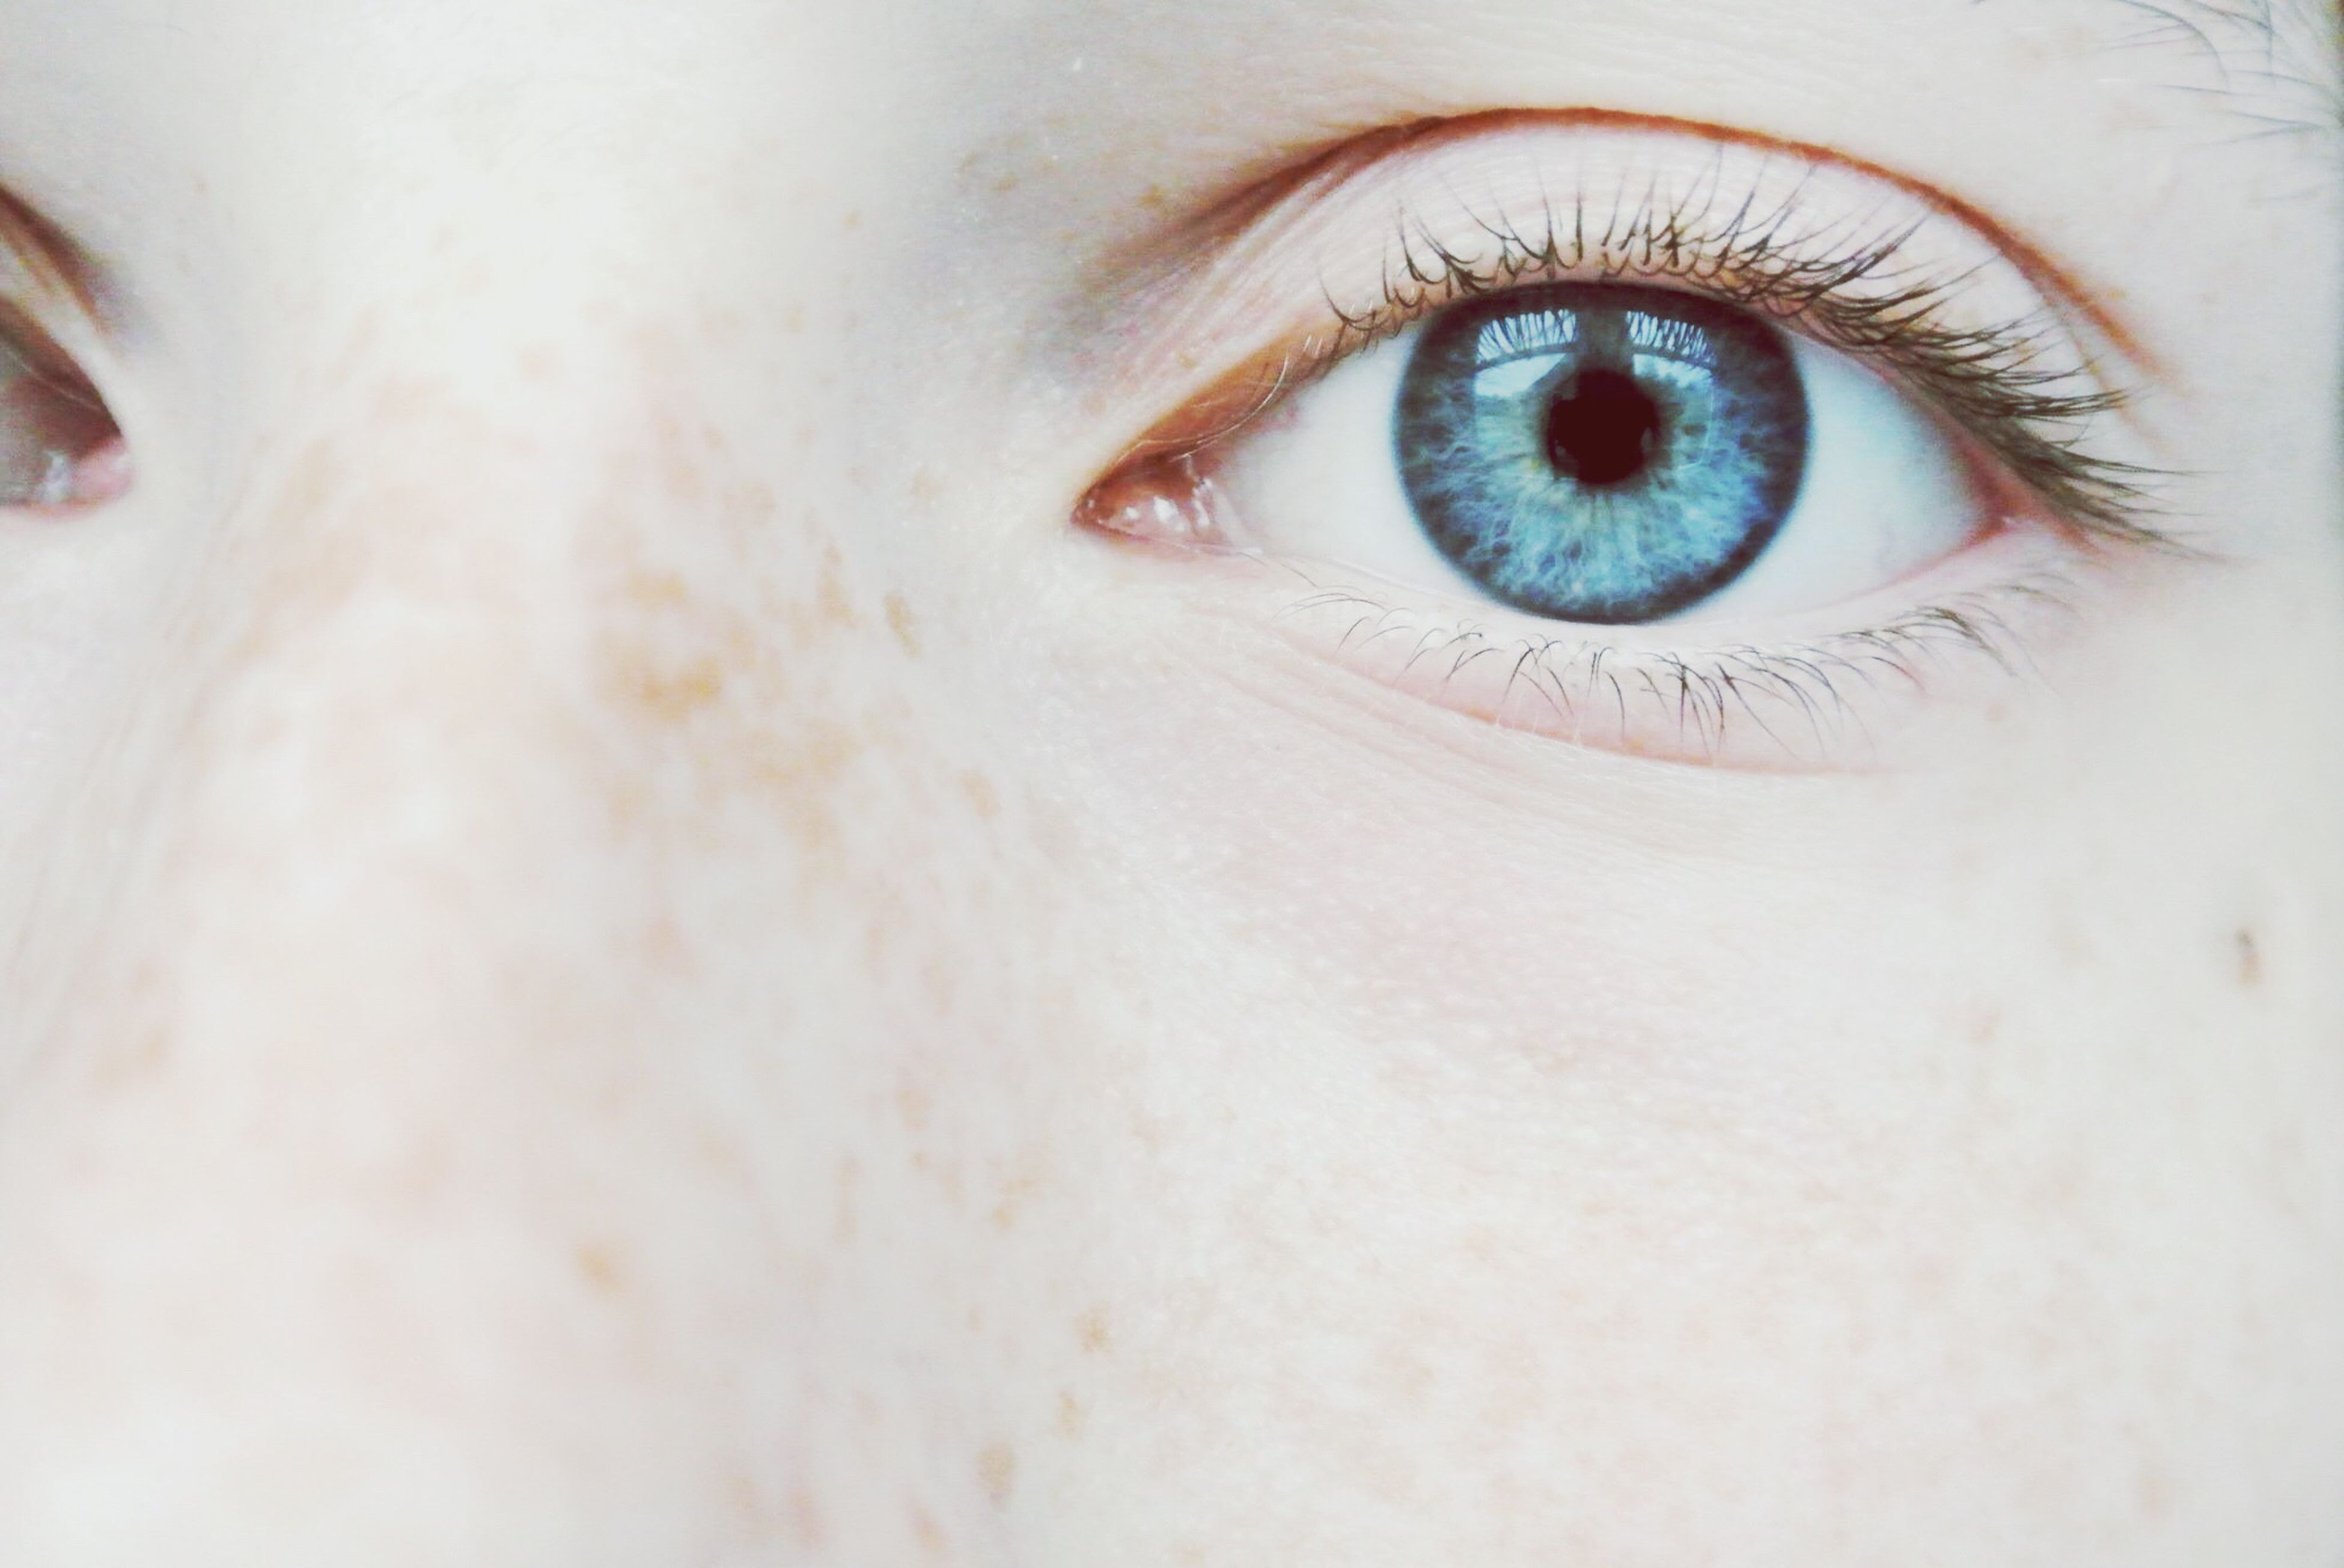 human eye, close-up, eyelash, portrait, looking at camera, eyesight, part of, human skin, human face, sensory perception, indoors, iris - eye, lifestyles, eyeball, extreme close-up, headshot, person